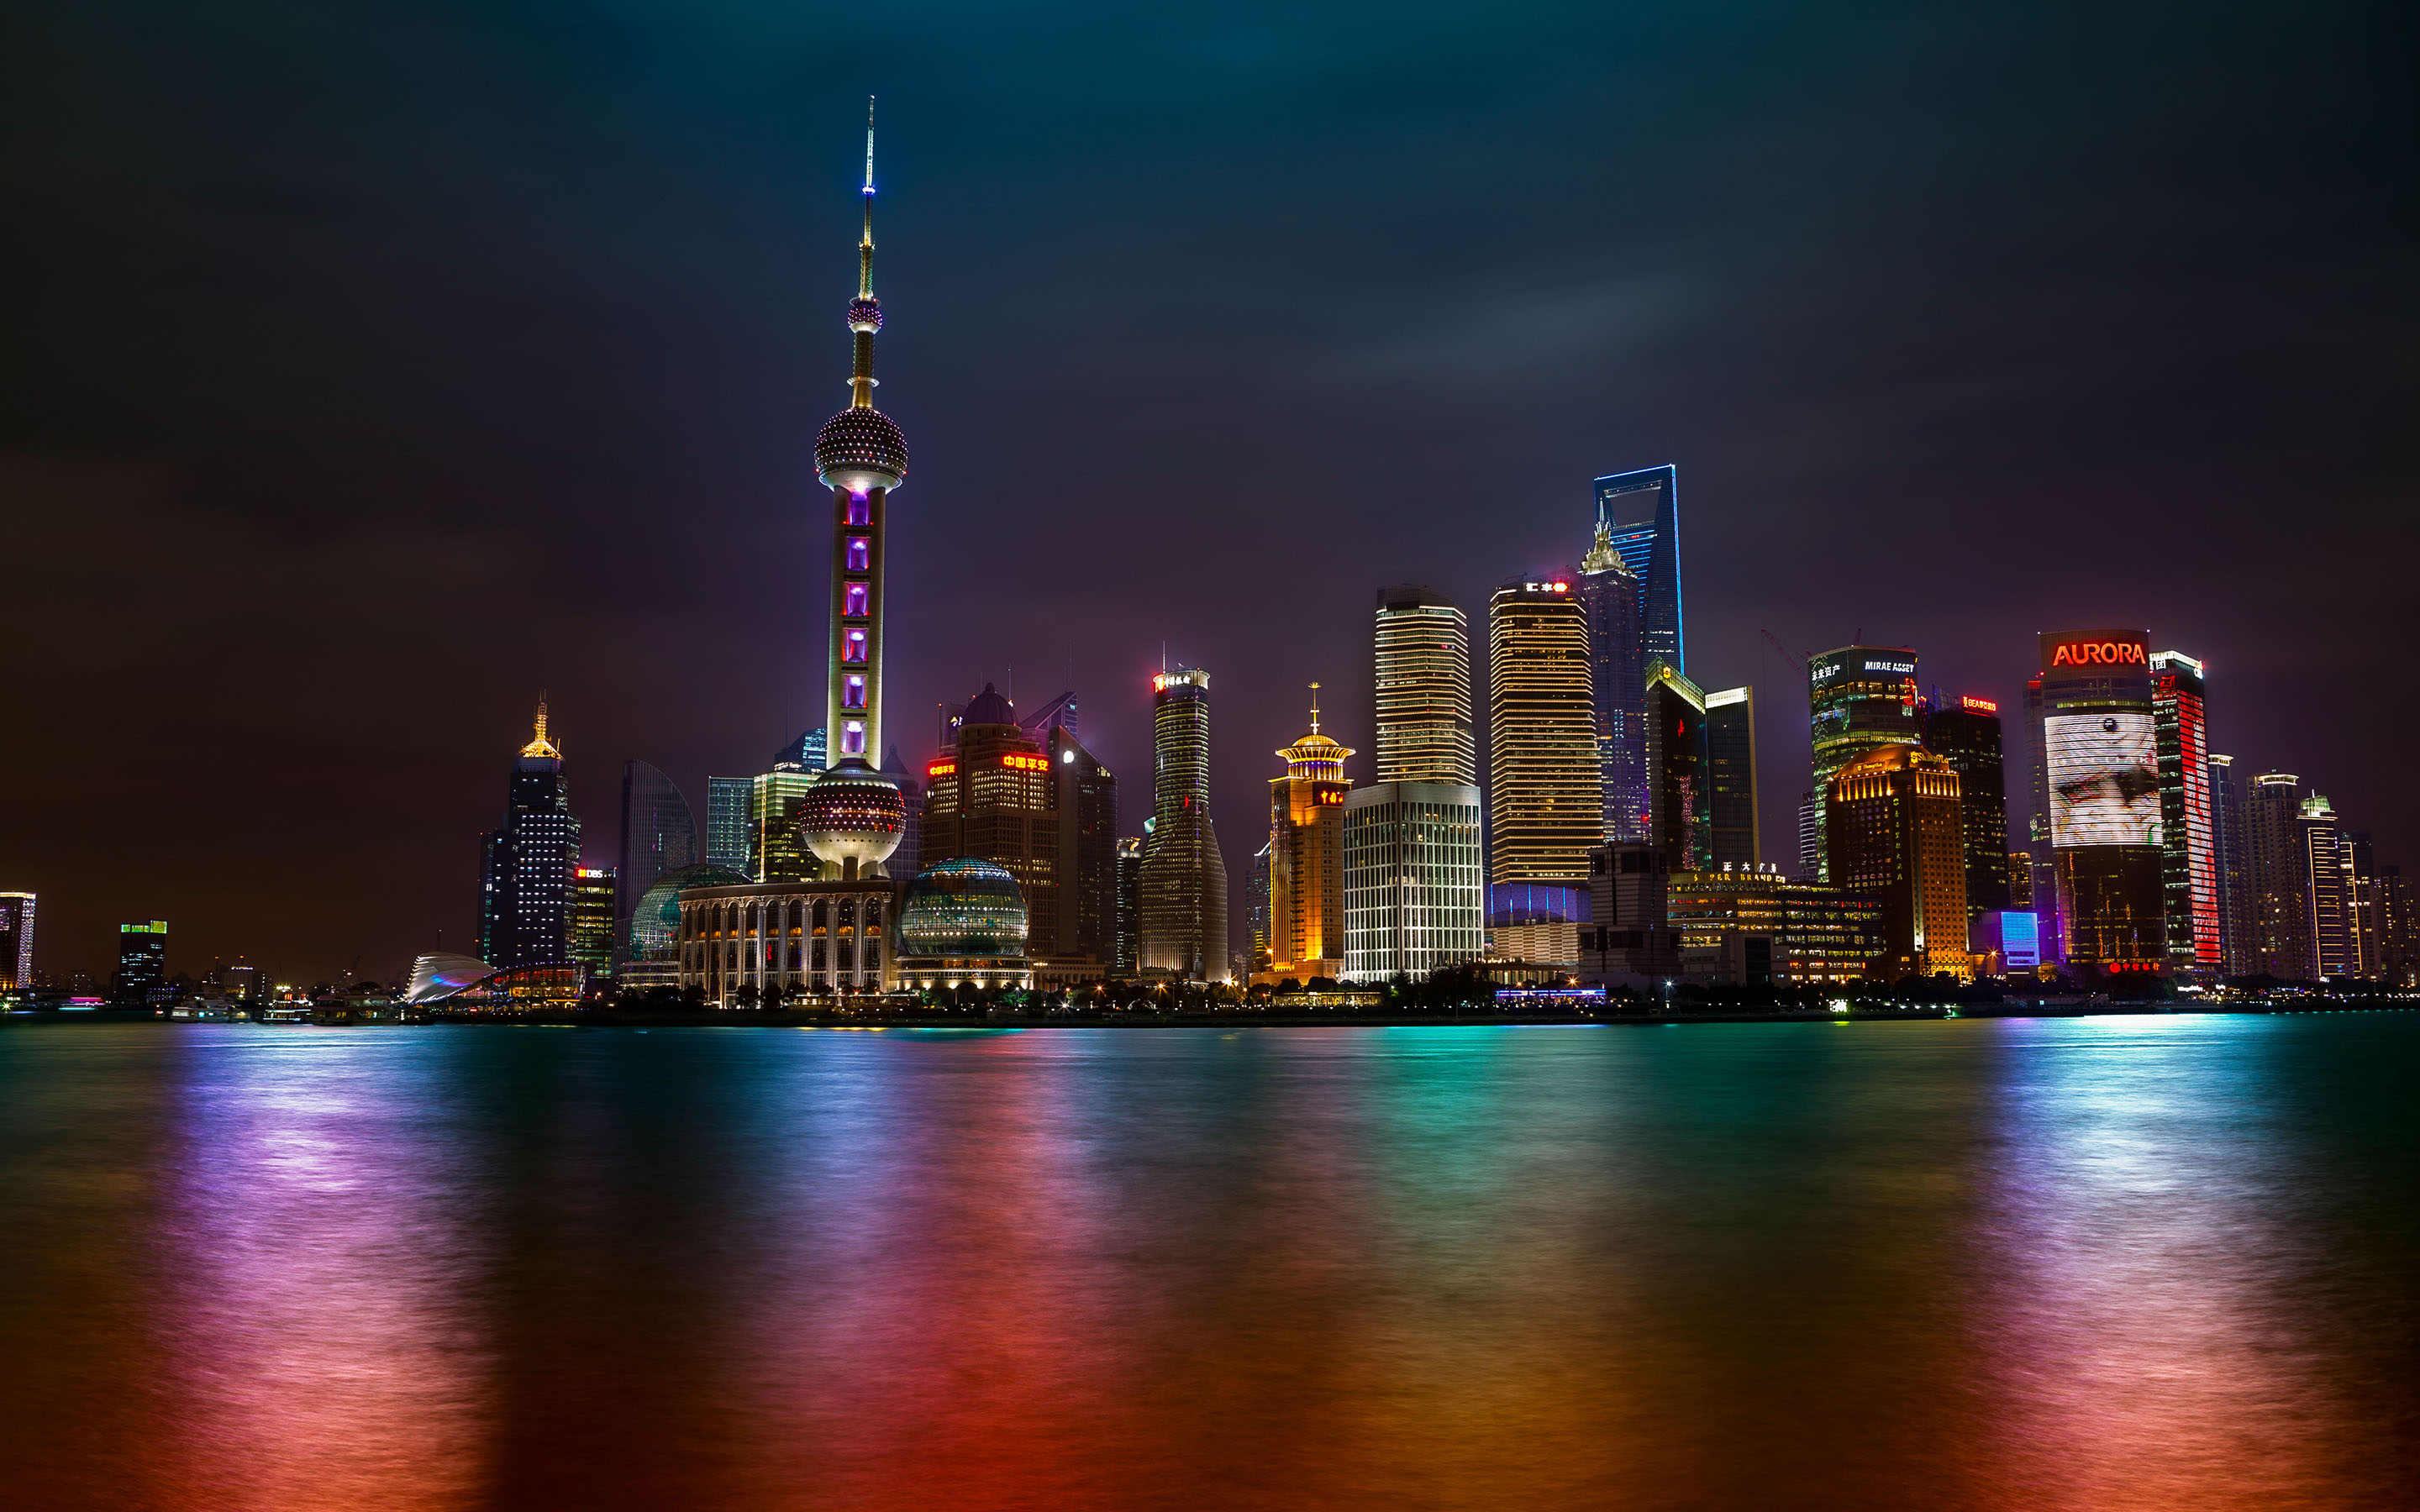 Shanghai buildings citiesarchitecturecityscapes hdr night lights skysrapers scenic